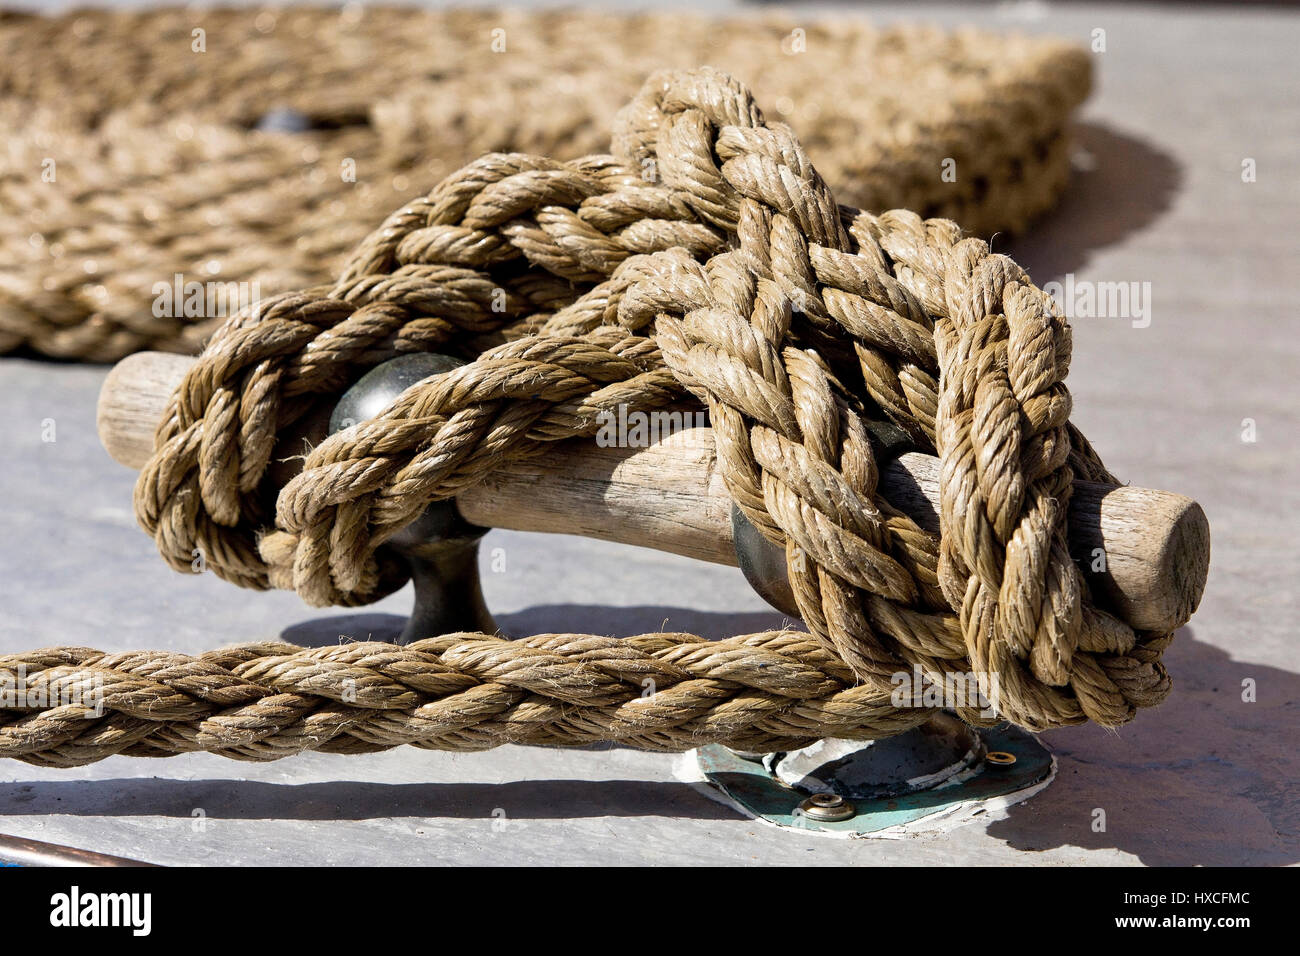 An occupied cleat of an old wooden boat, A cleat occupied by in old wooden boat  , Eine belegte Klampe von einem - Stock Image